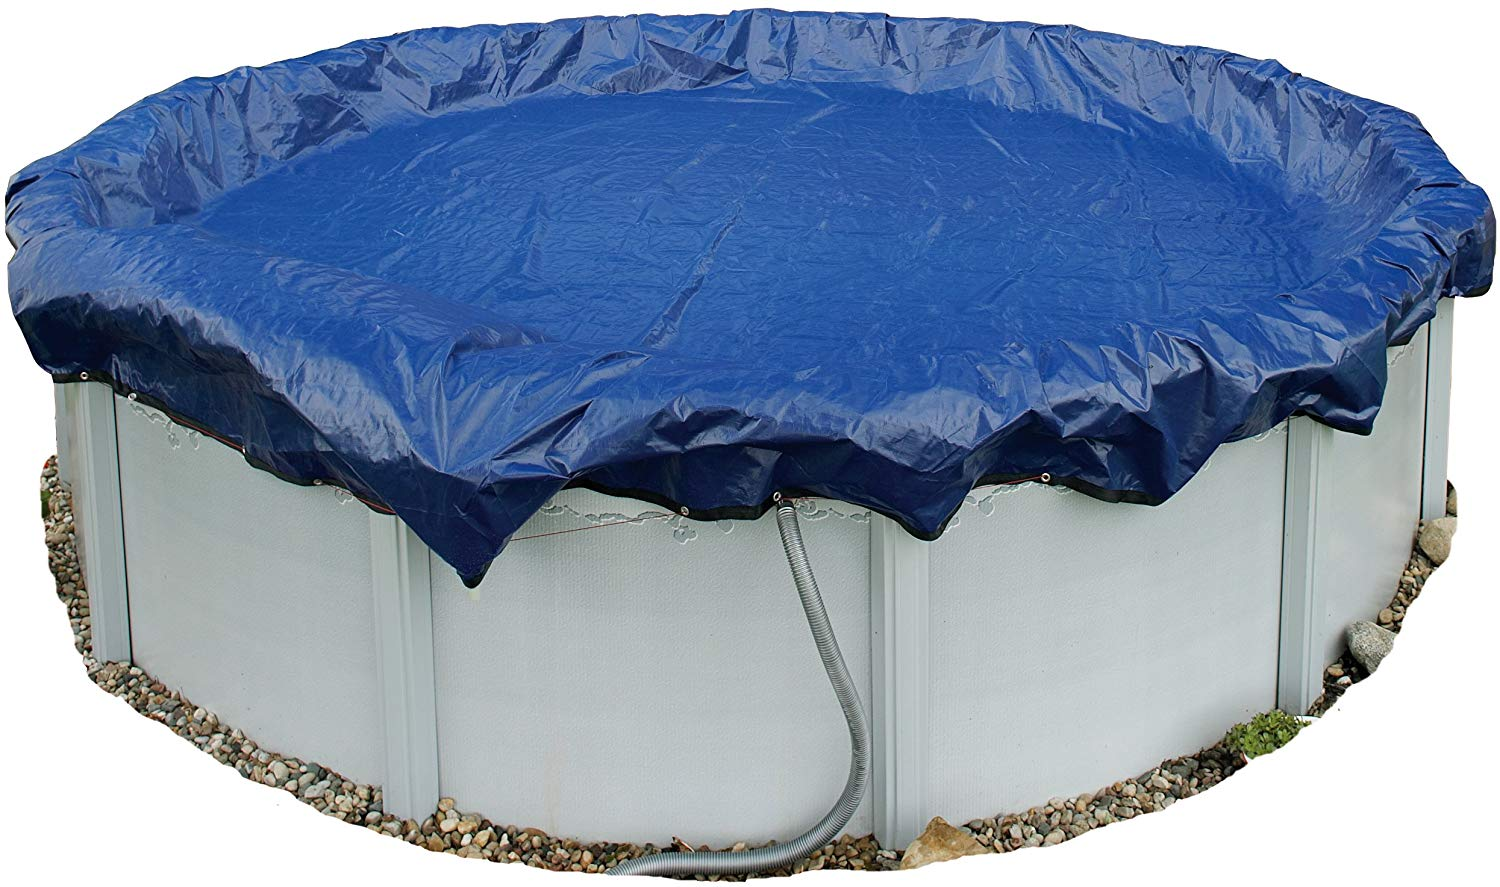 Blue Wave Gold 24-ft above ground cover